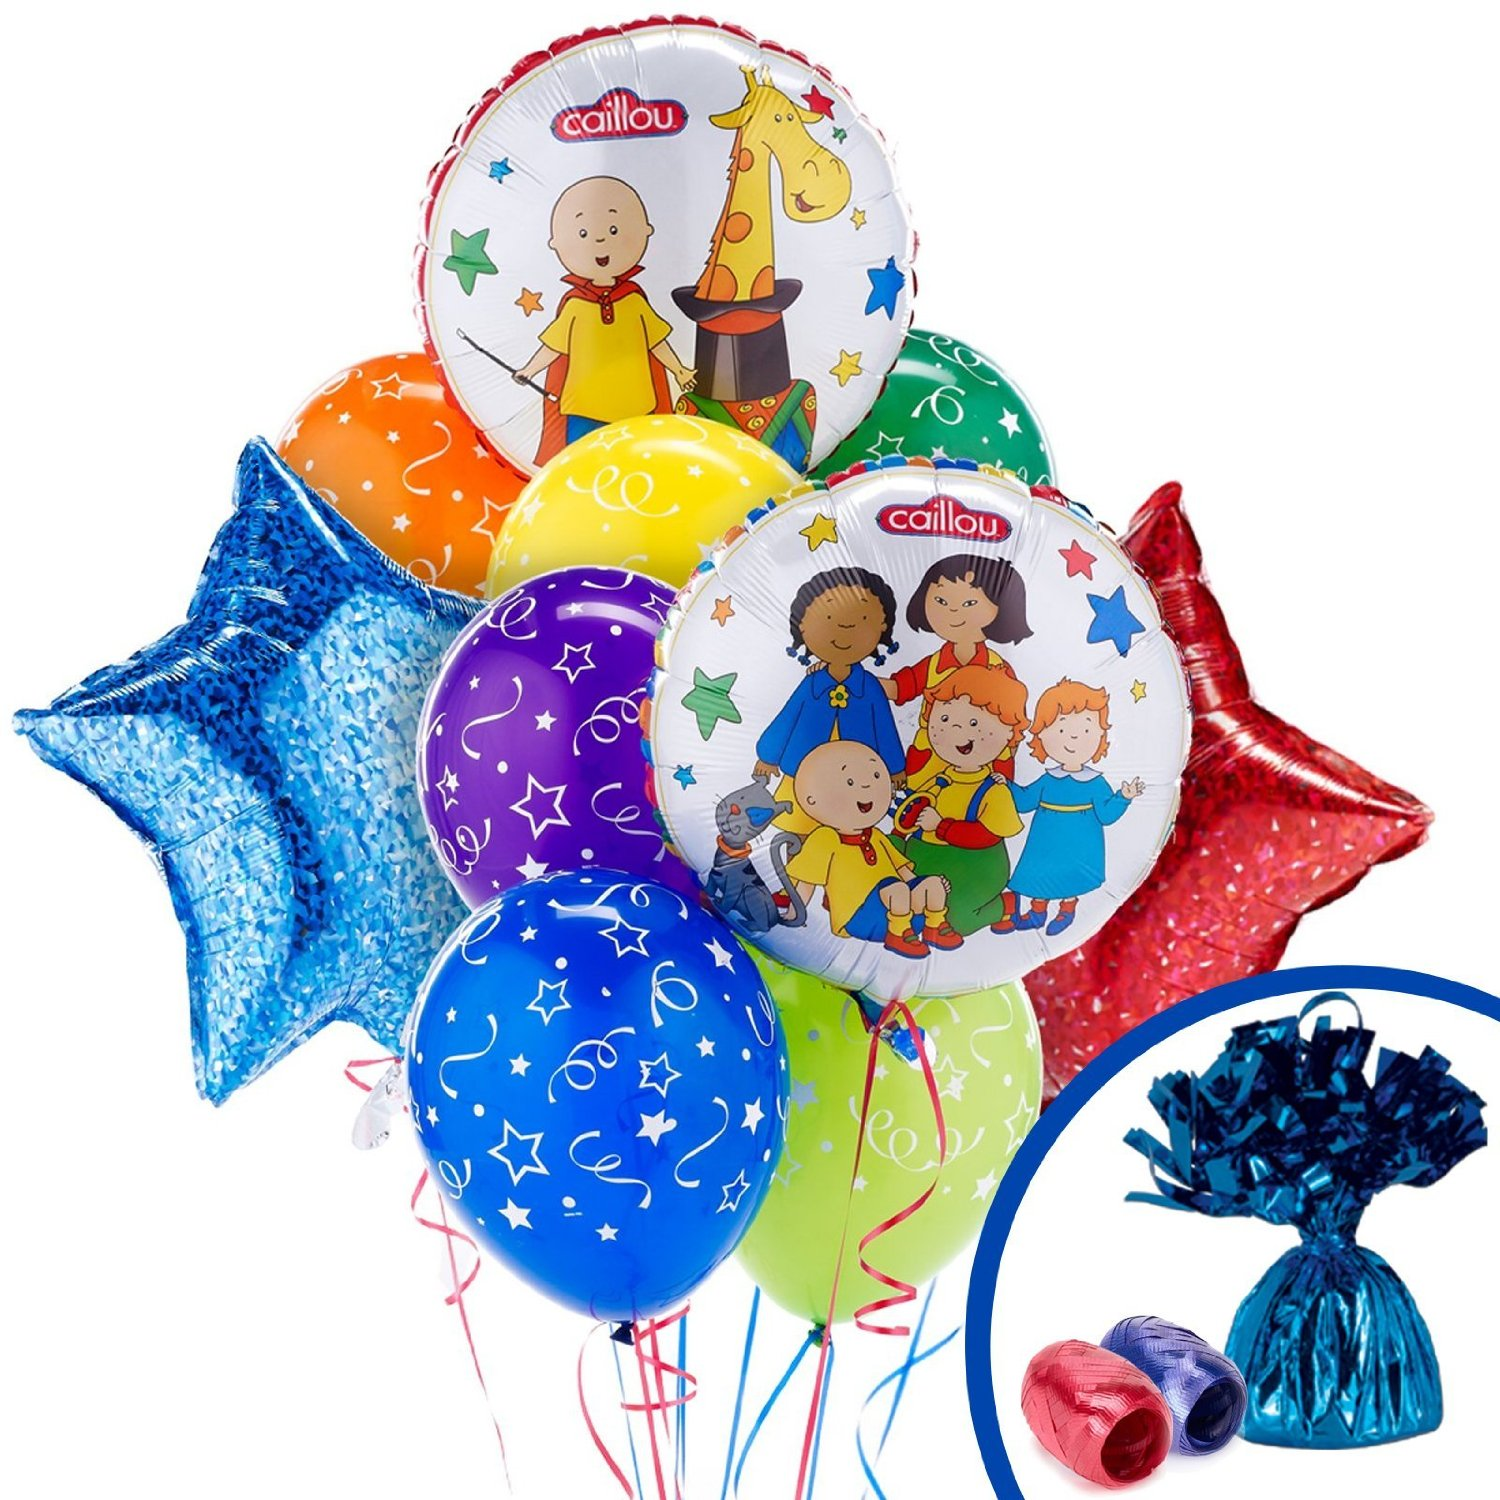 Please Plan My Party: Caillou Birthday Party Ideas